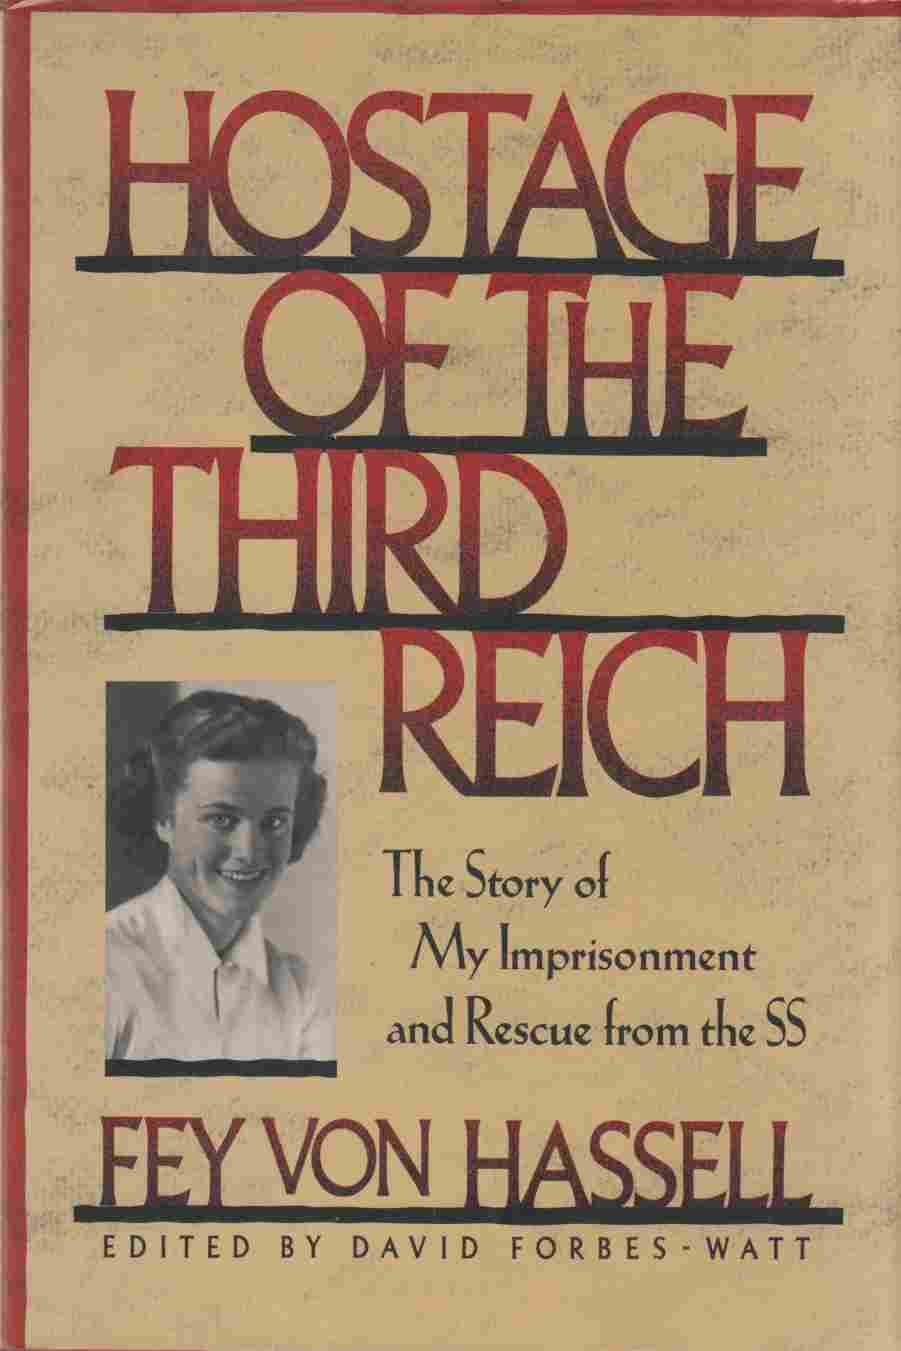 Image for Hostage of the Third Reich The Story of My Imprisonment and Rescue from the SS